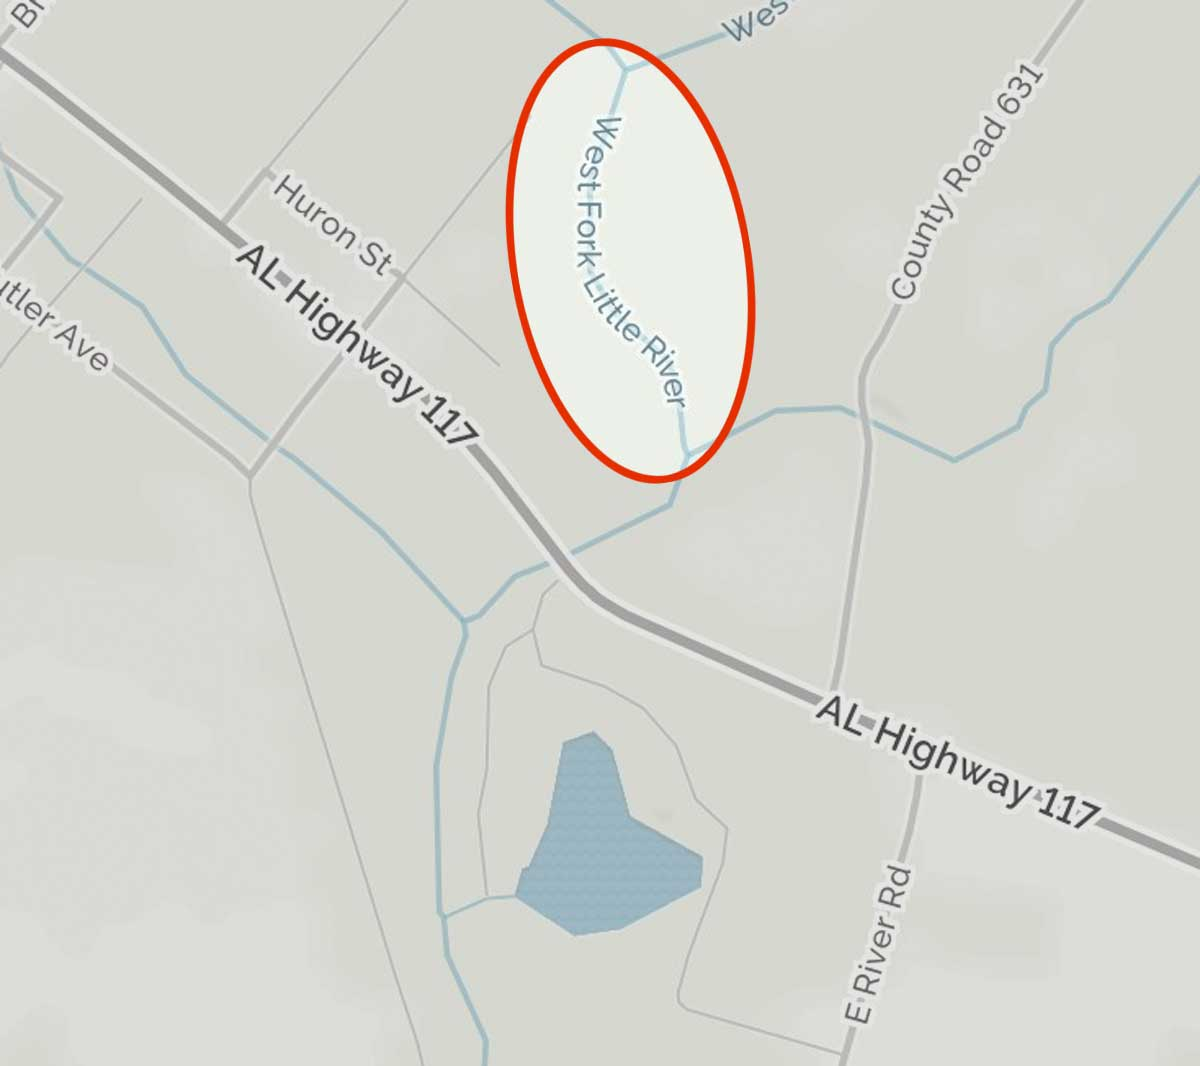 Enlargement of MapQuest map showing river name